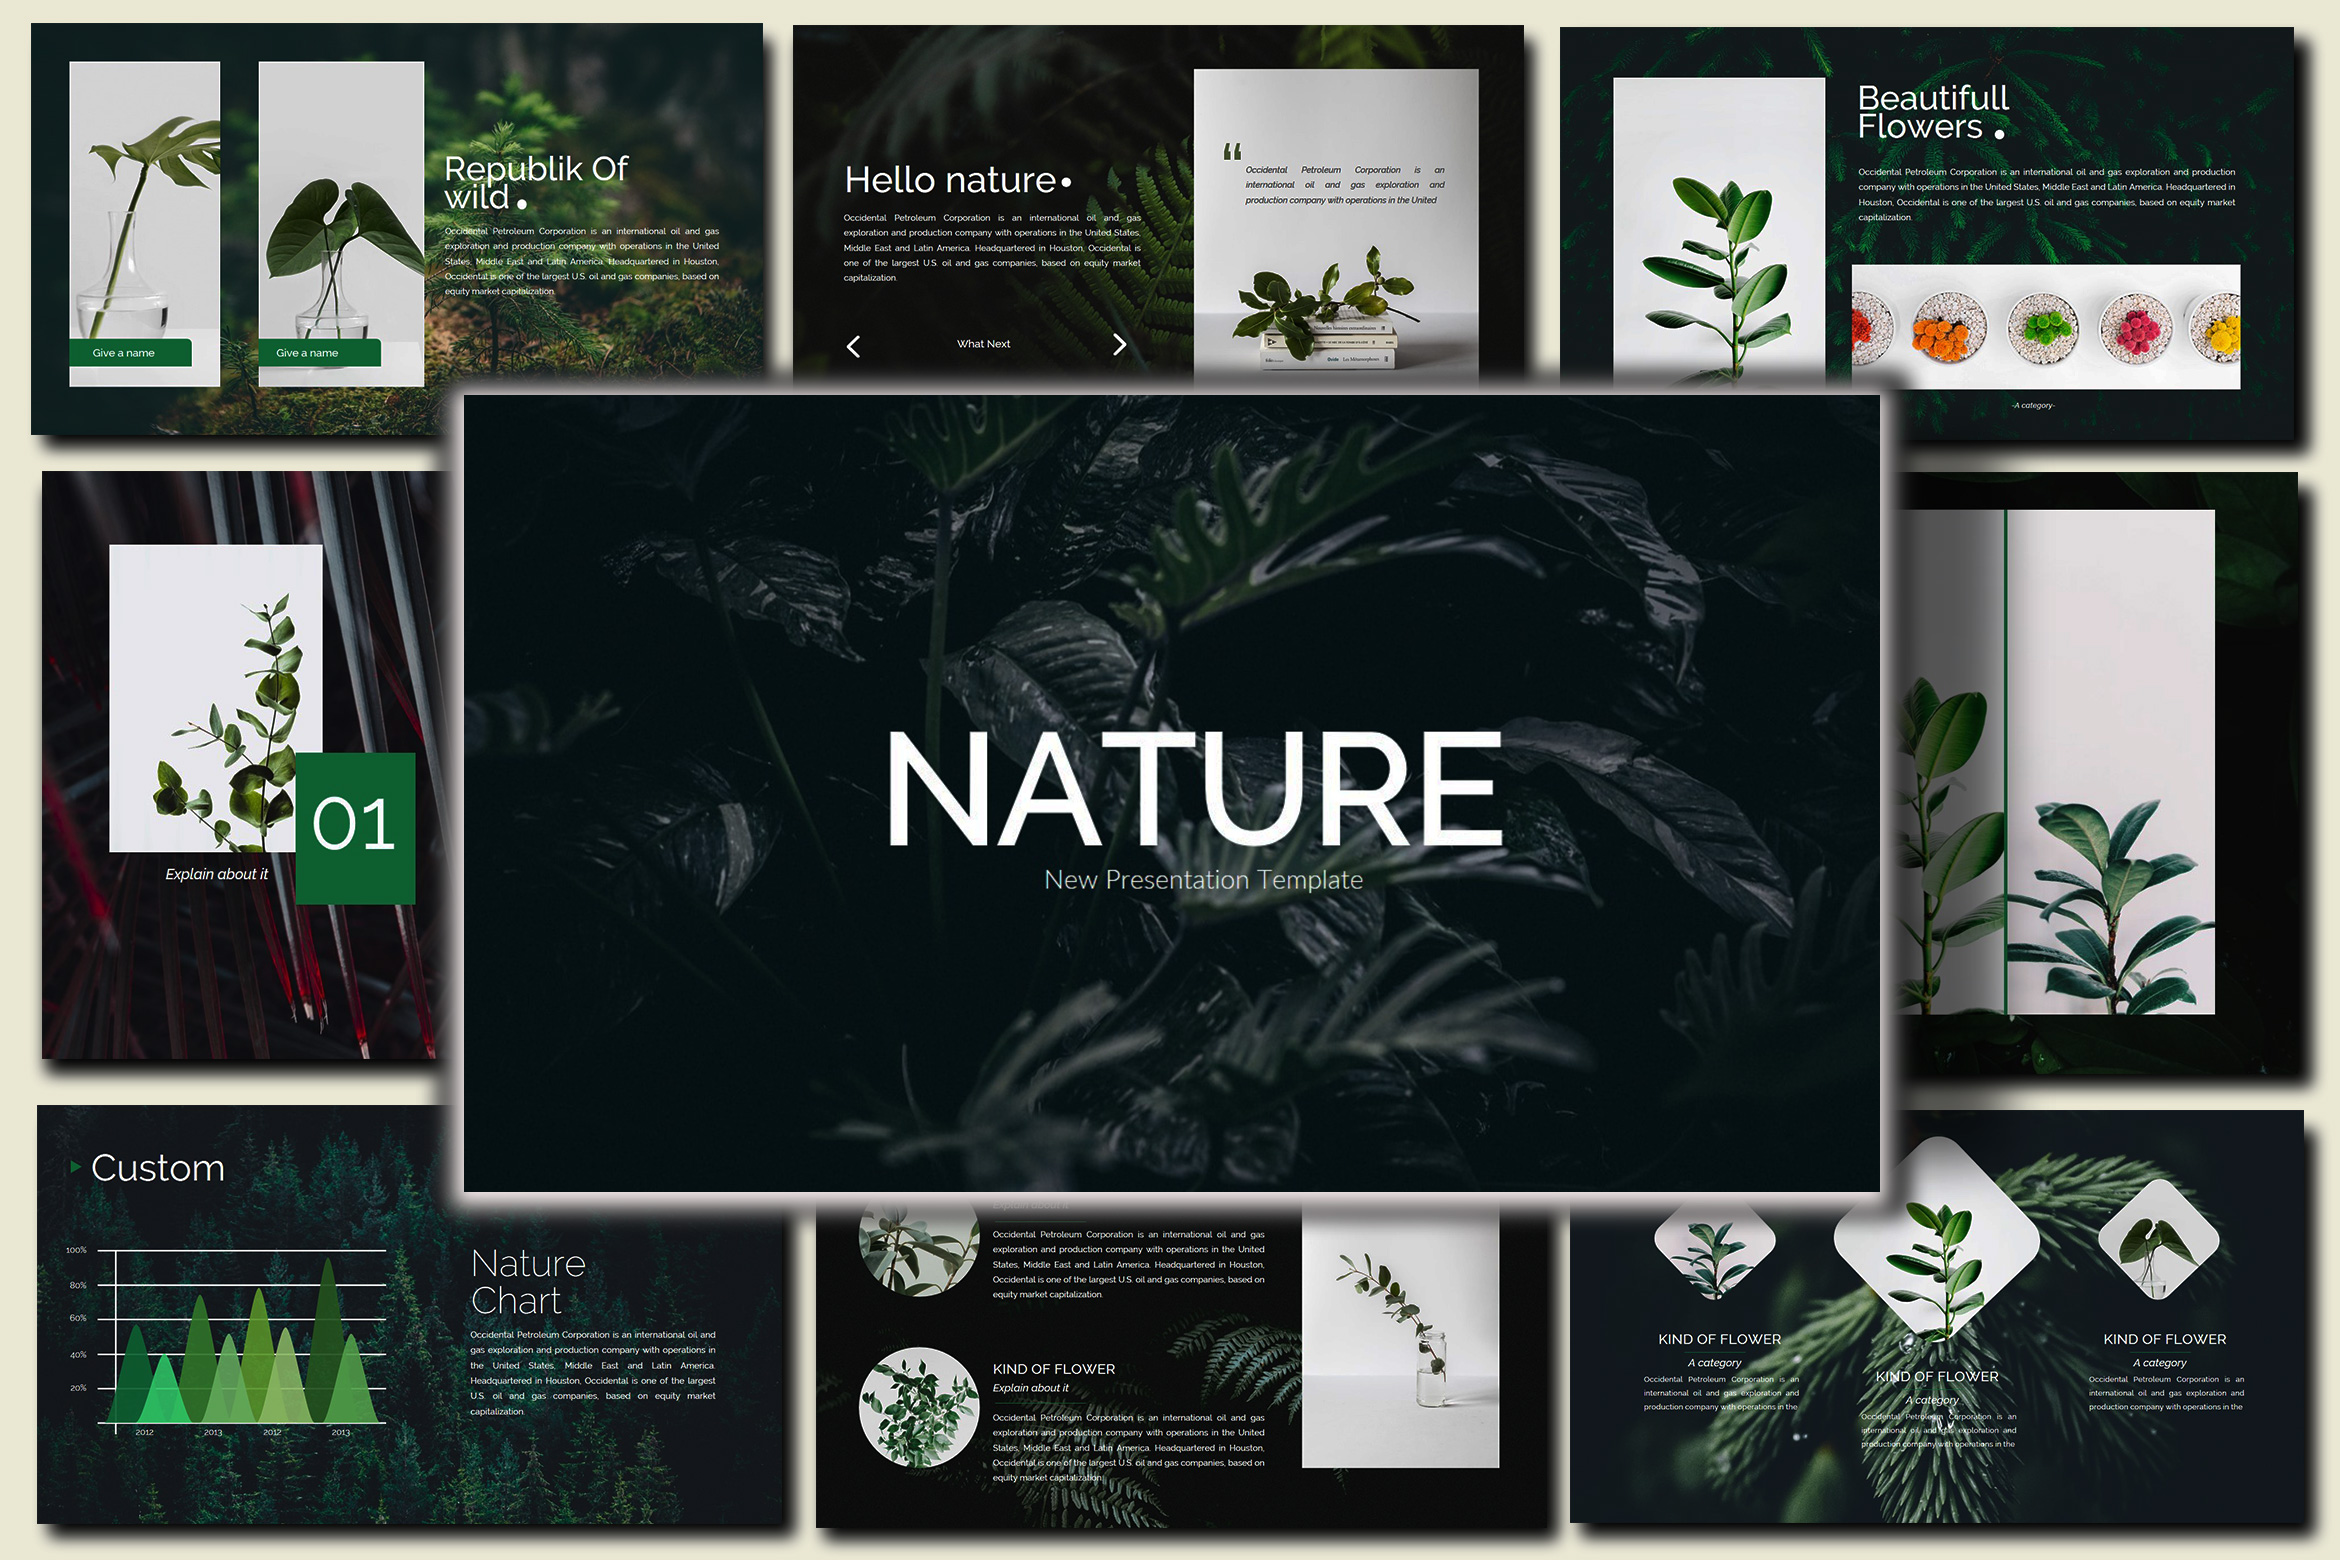 Nature - Google Slides Presentation example image 2